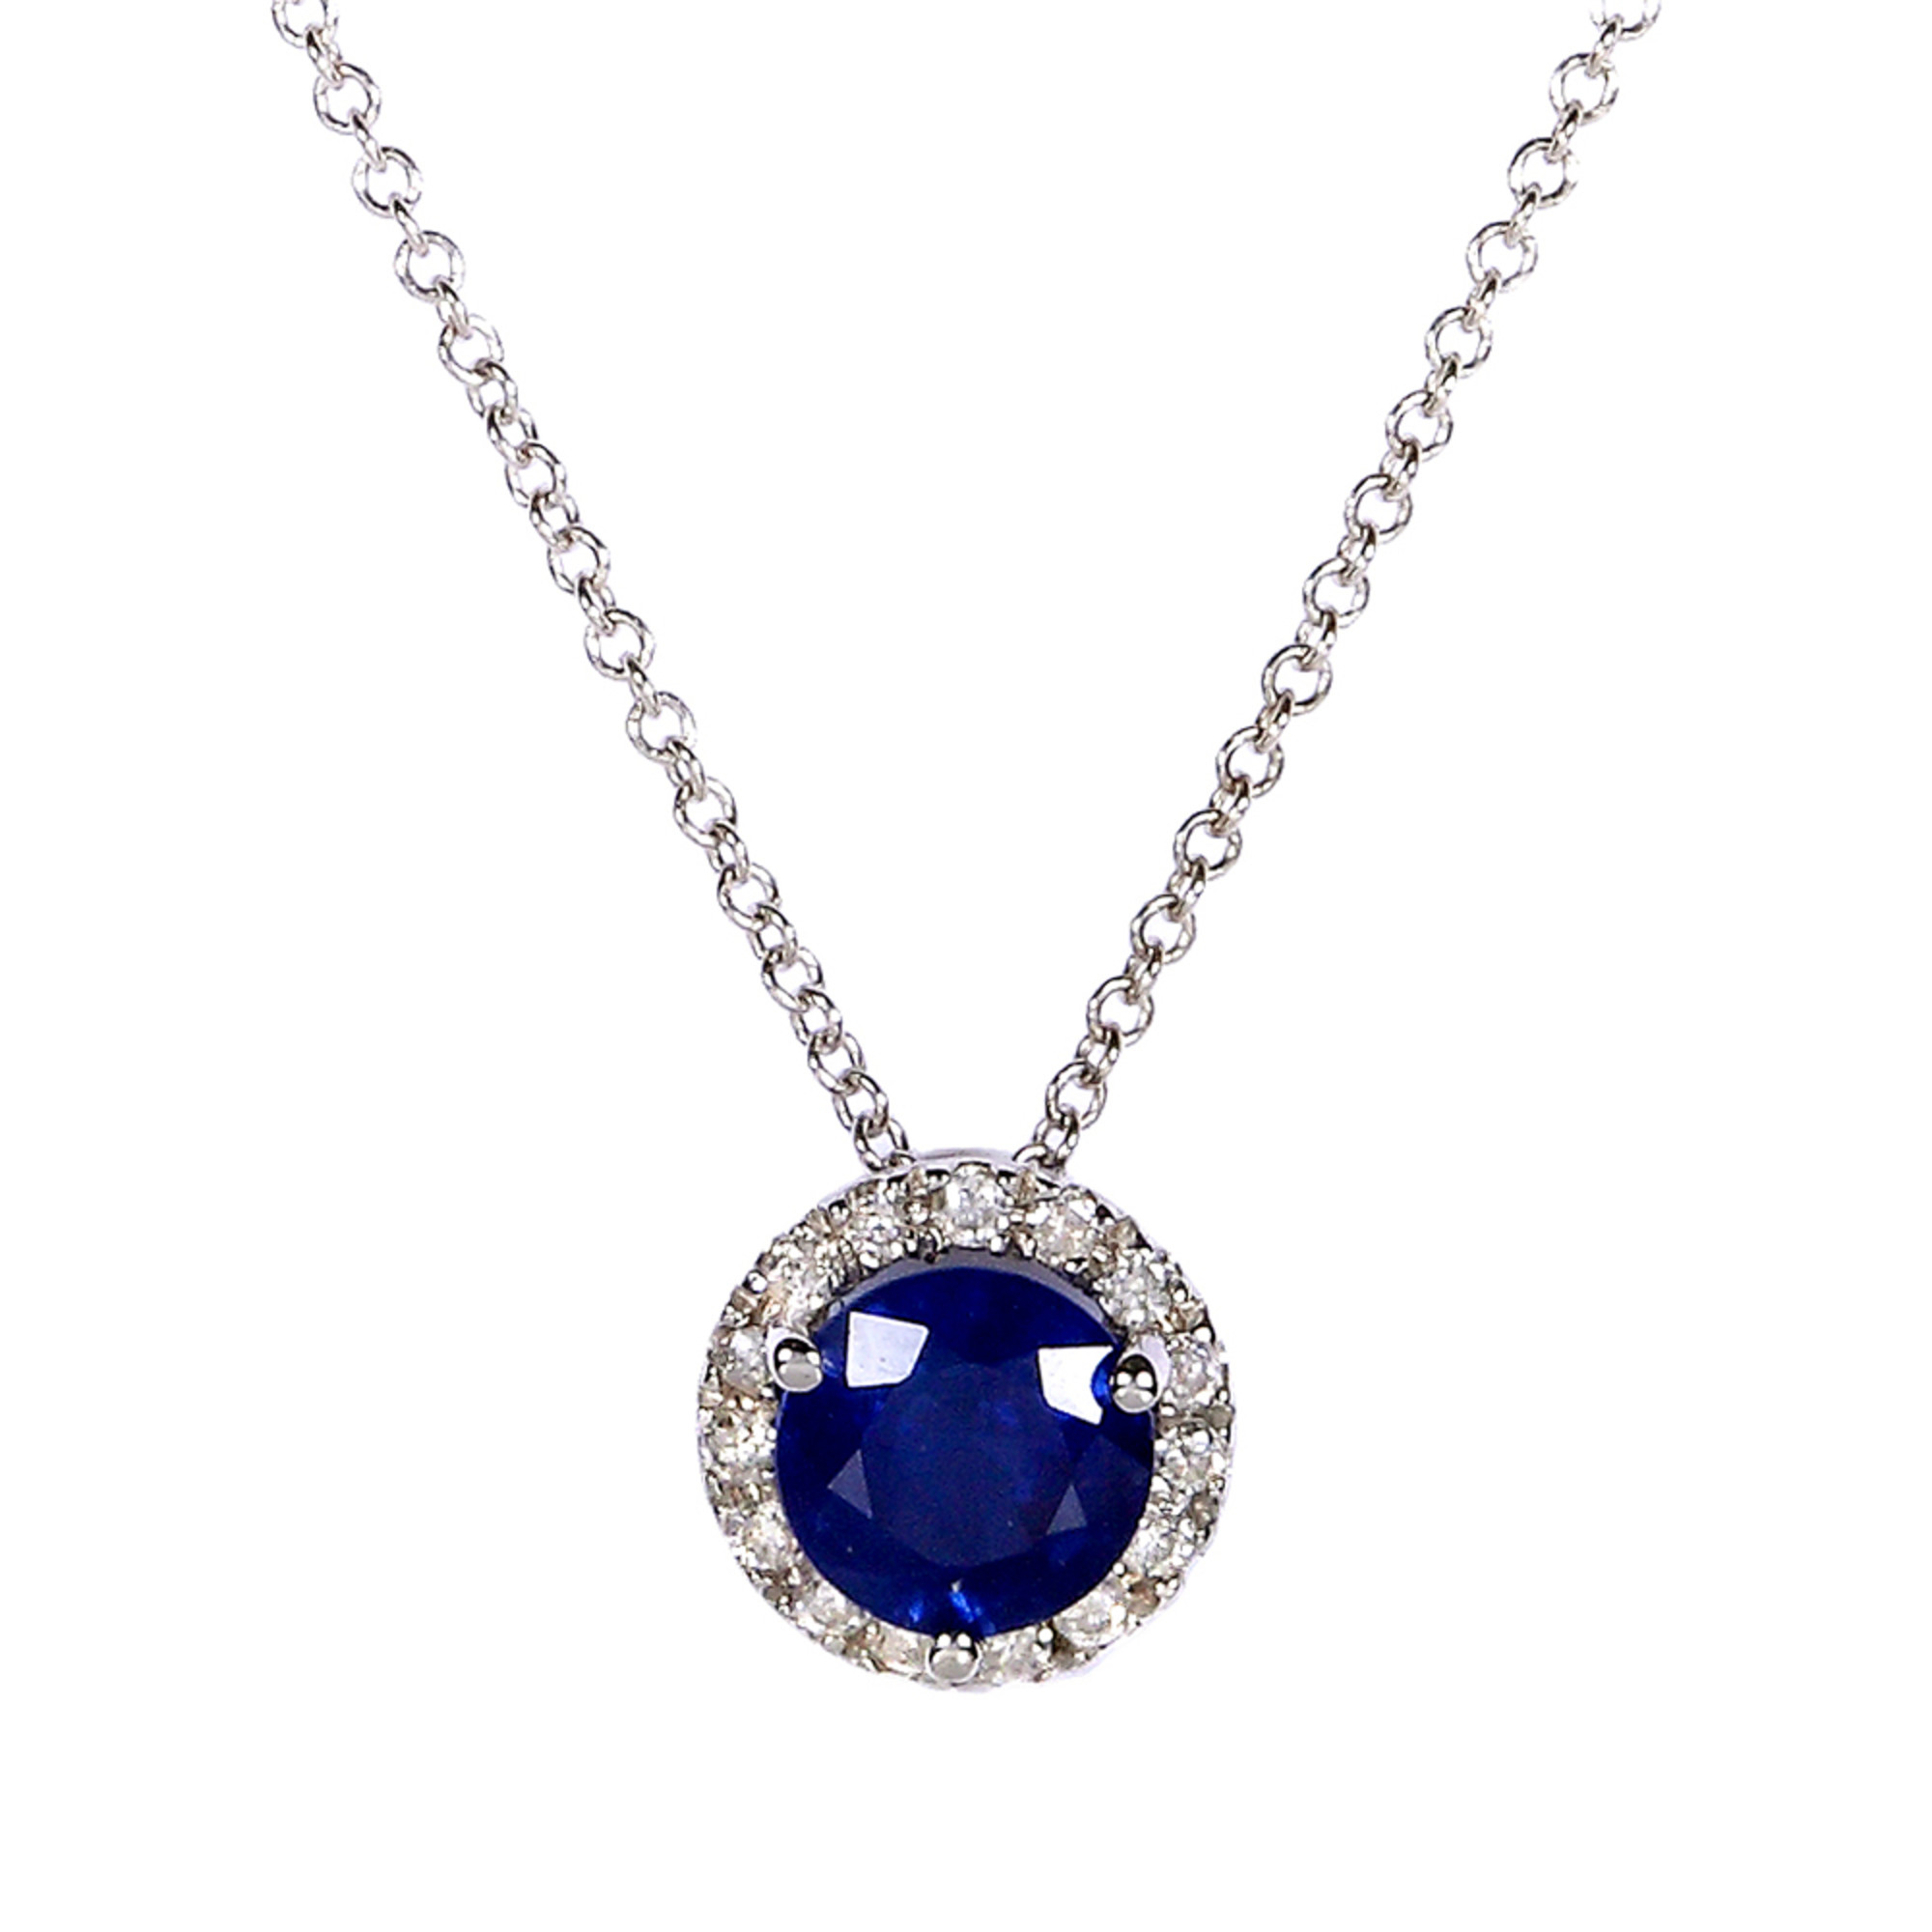 Round Blue Sapphire and Diamond Necklace 7 8 Carat (ctw) in 14k White Gold by